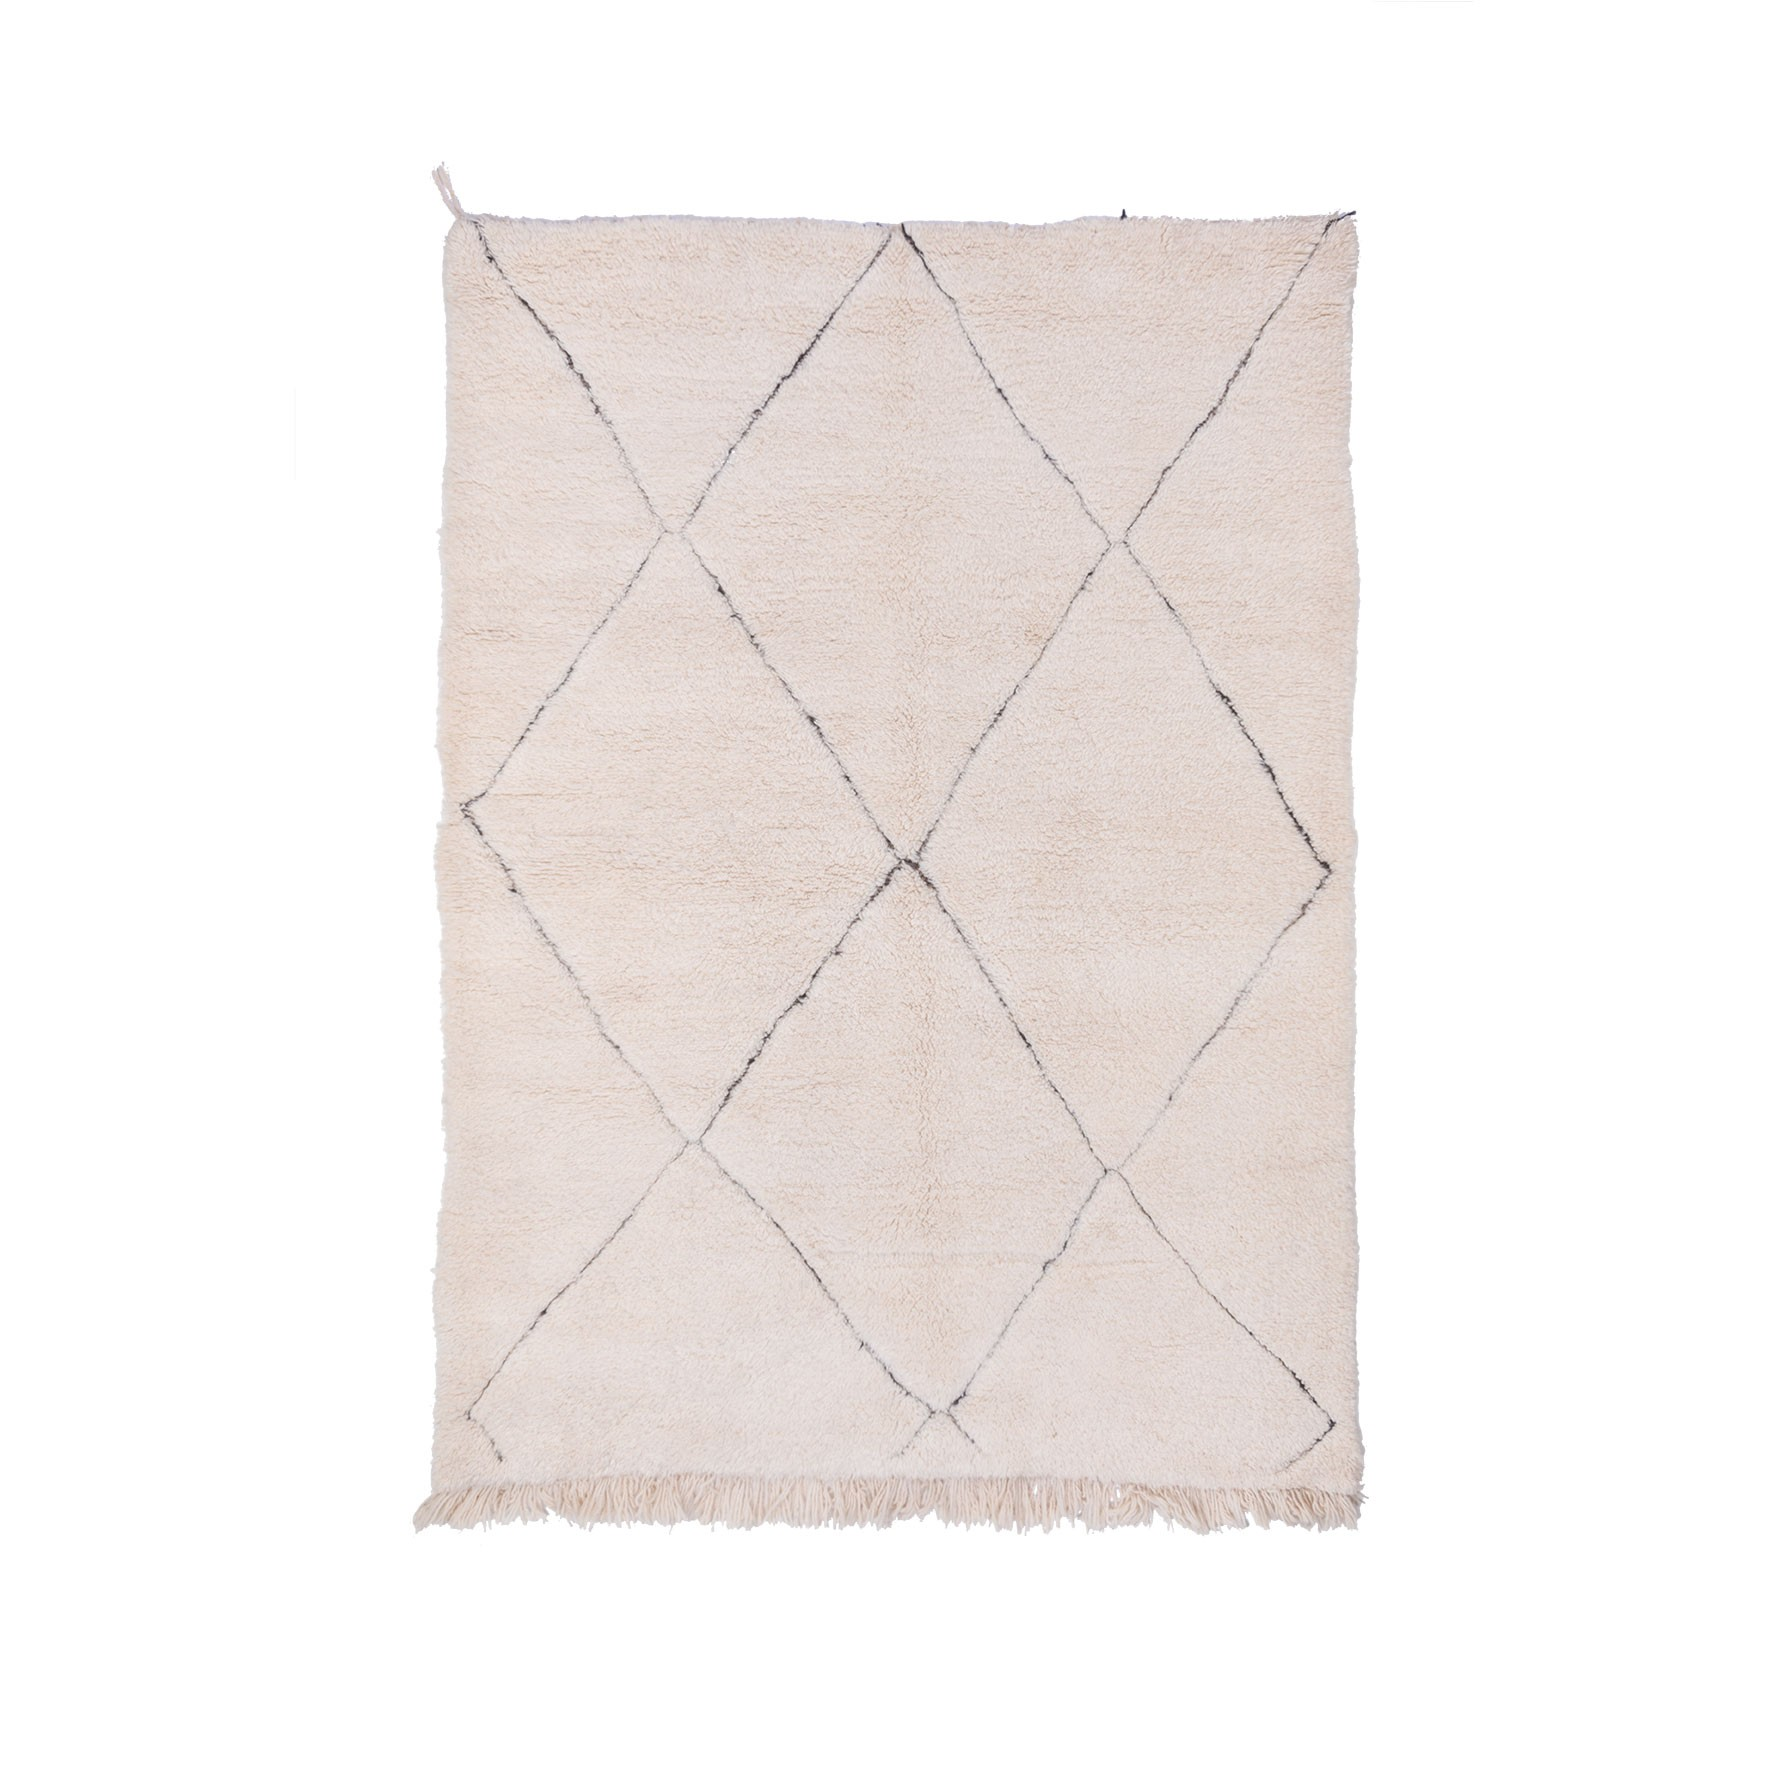 Beni Ouarain rug 4 diamonds gray outline